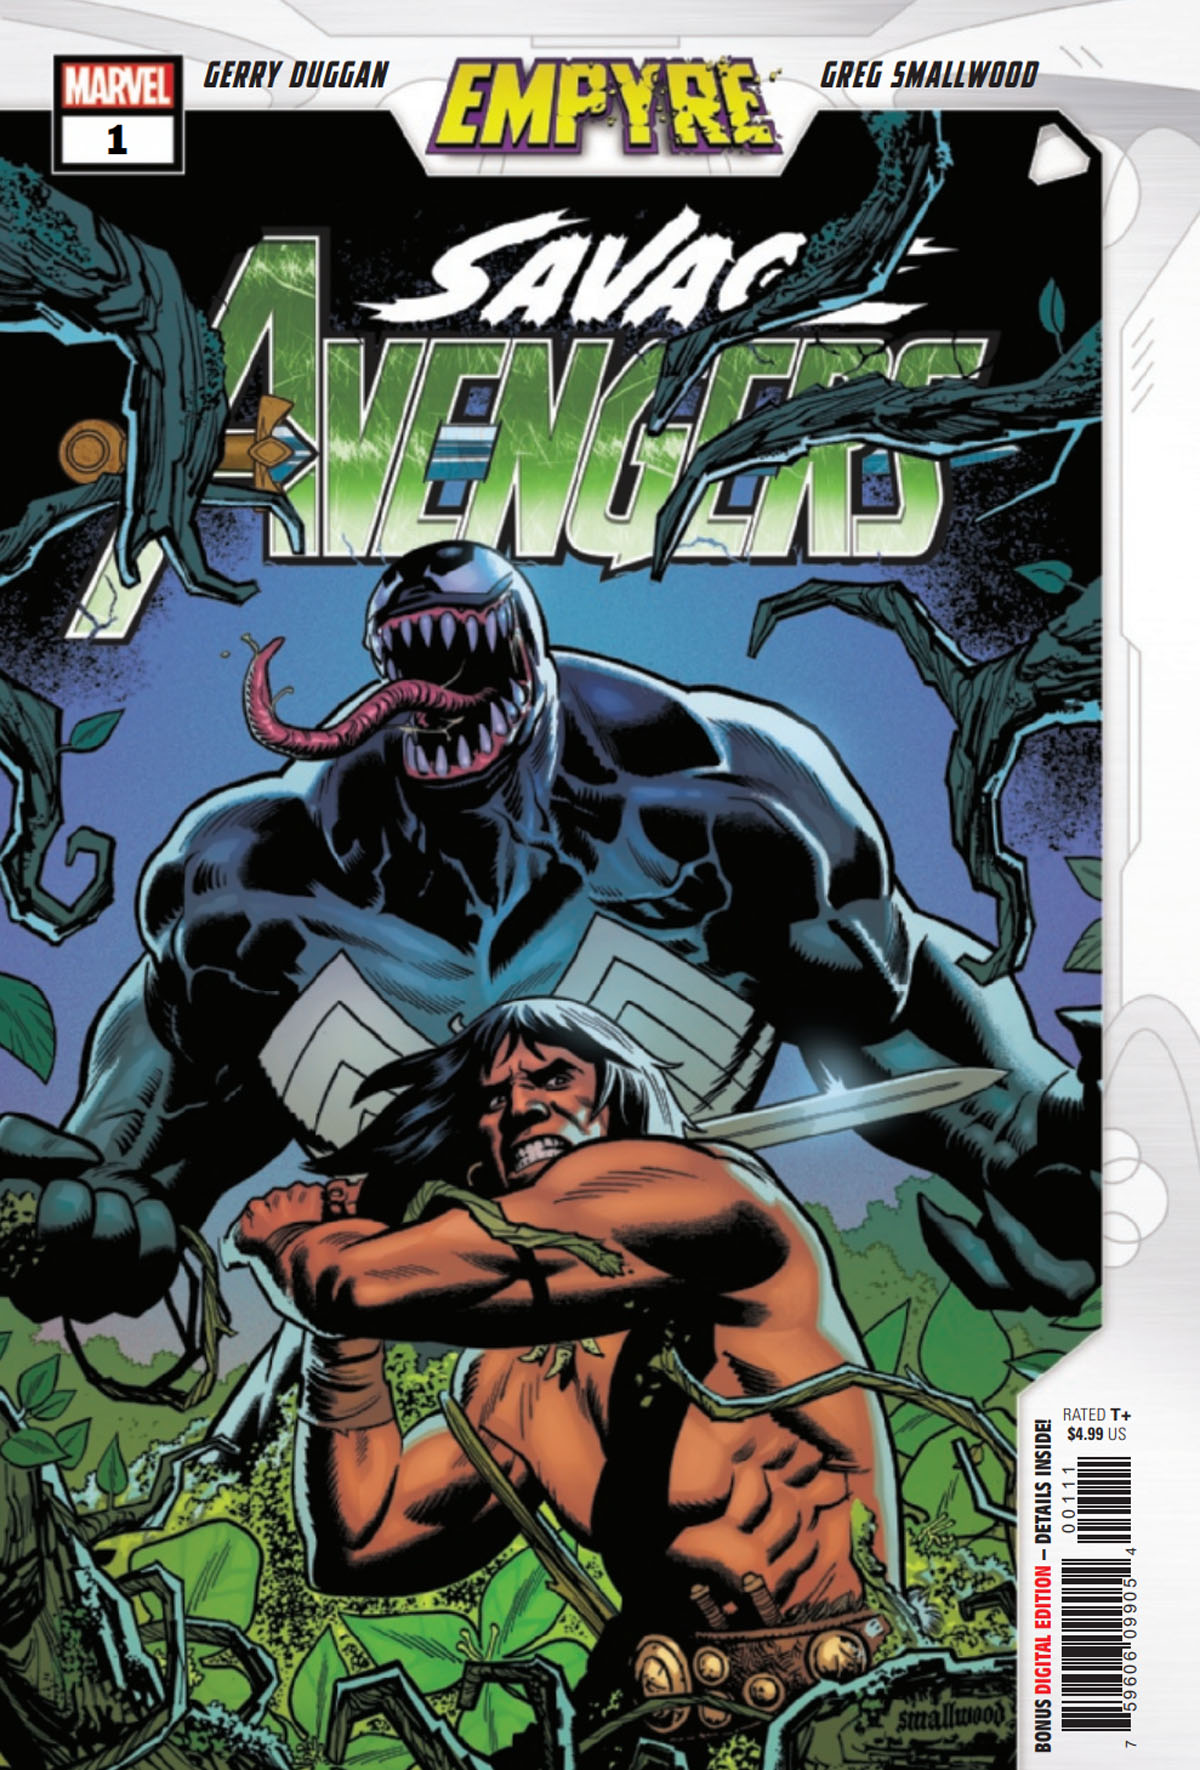 Empyre: Savage Avengers #1 cover